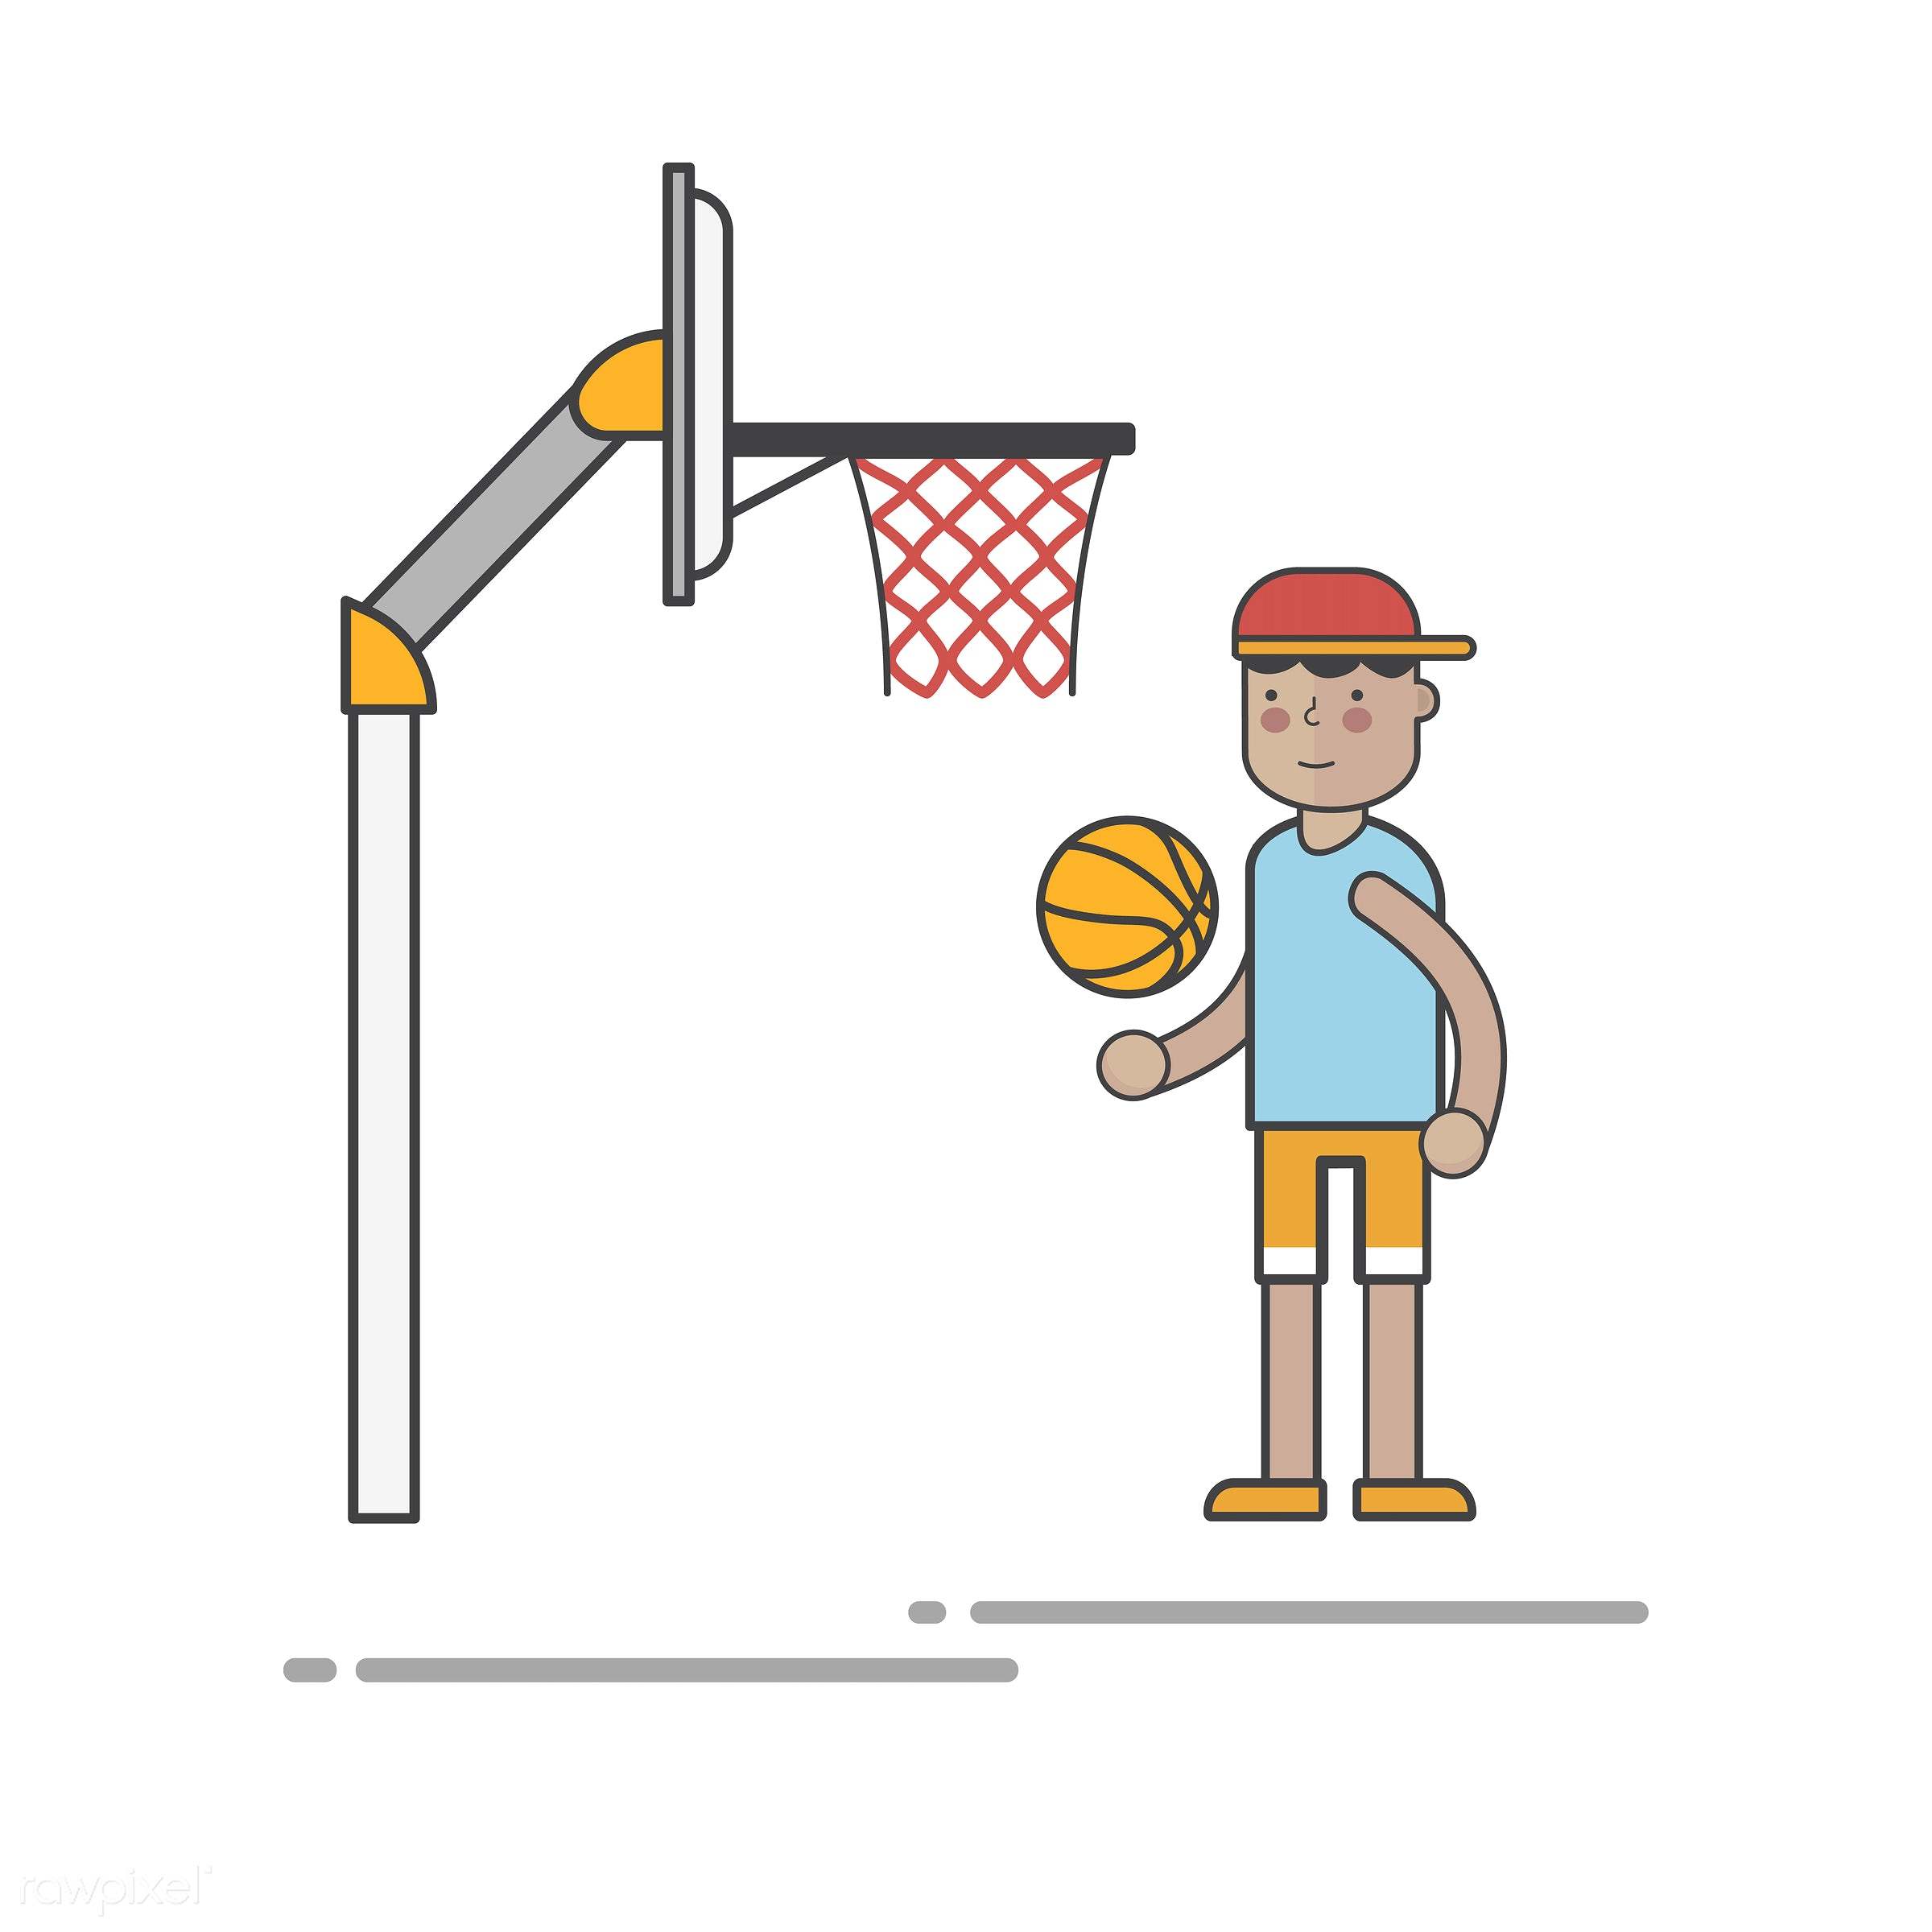 home, house, comfort, homely, cosy, warmth, living, household, residence, pad, abode, dwelling, vector, adults, basketball,...